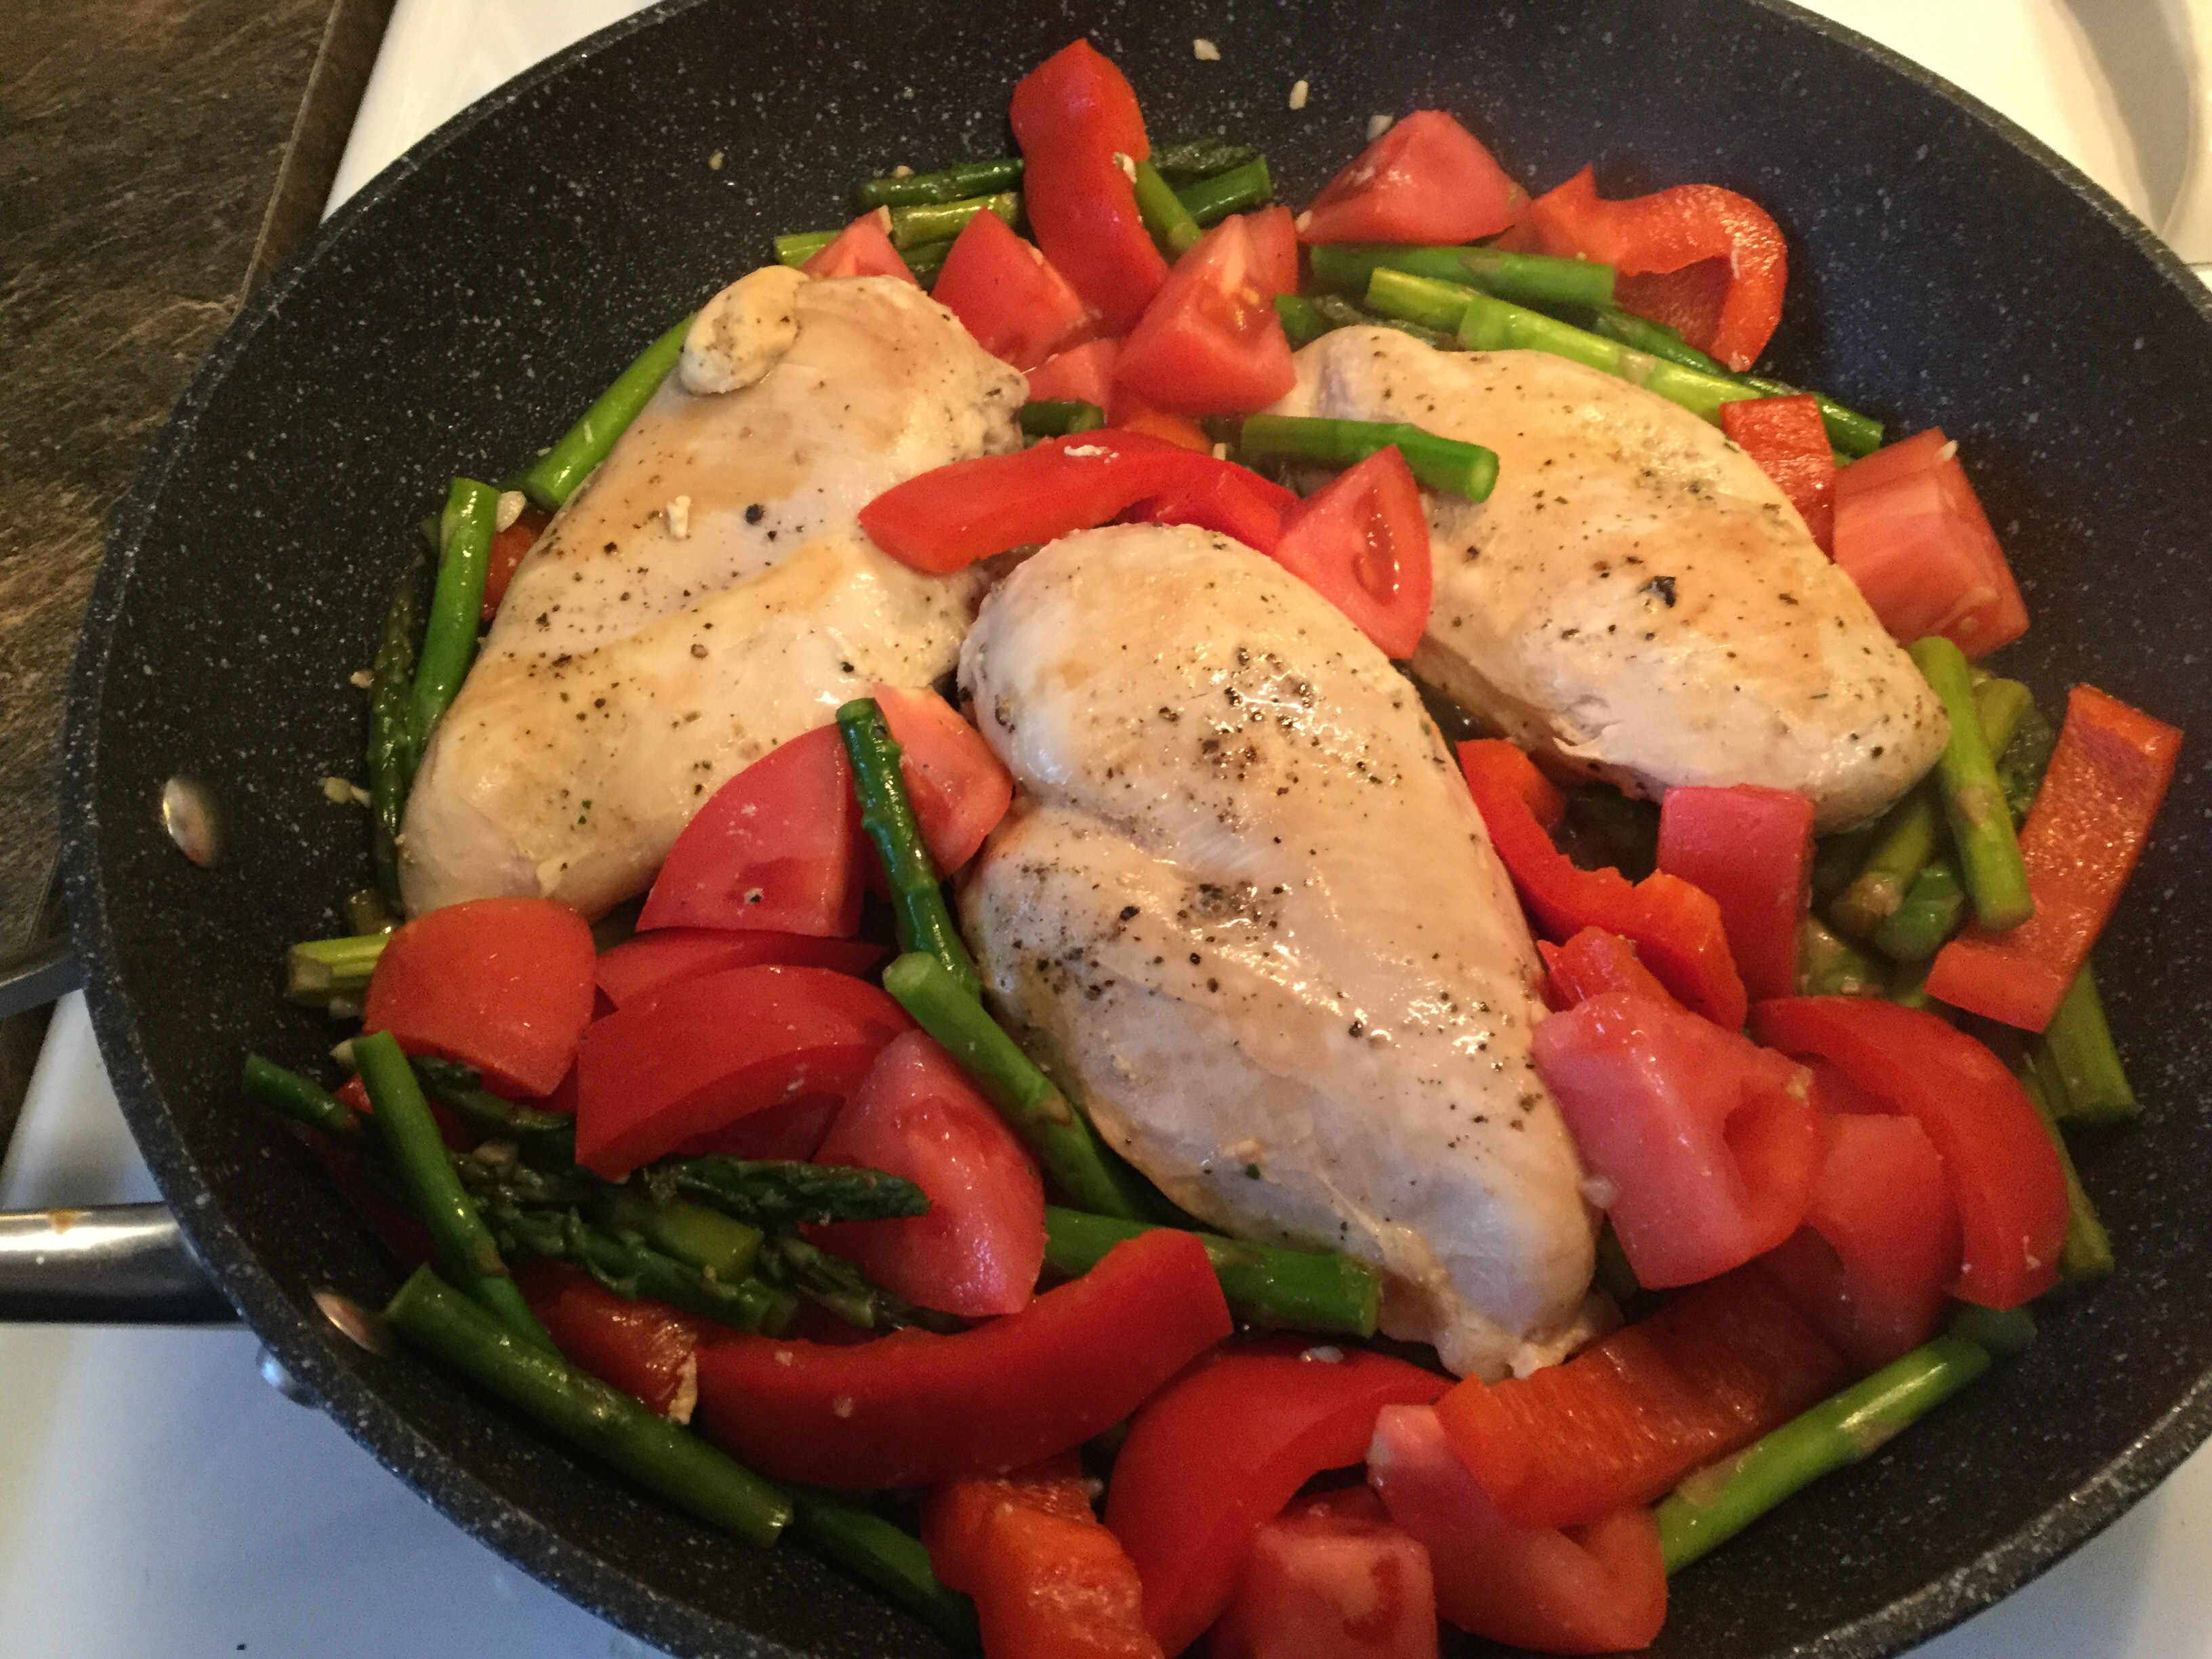 Chicken with Asparagus and Roasted Red Peppers